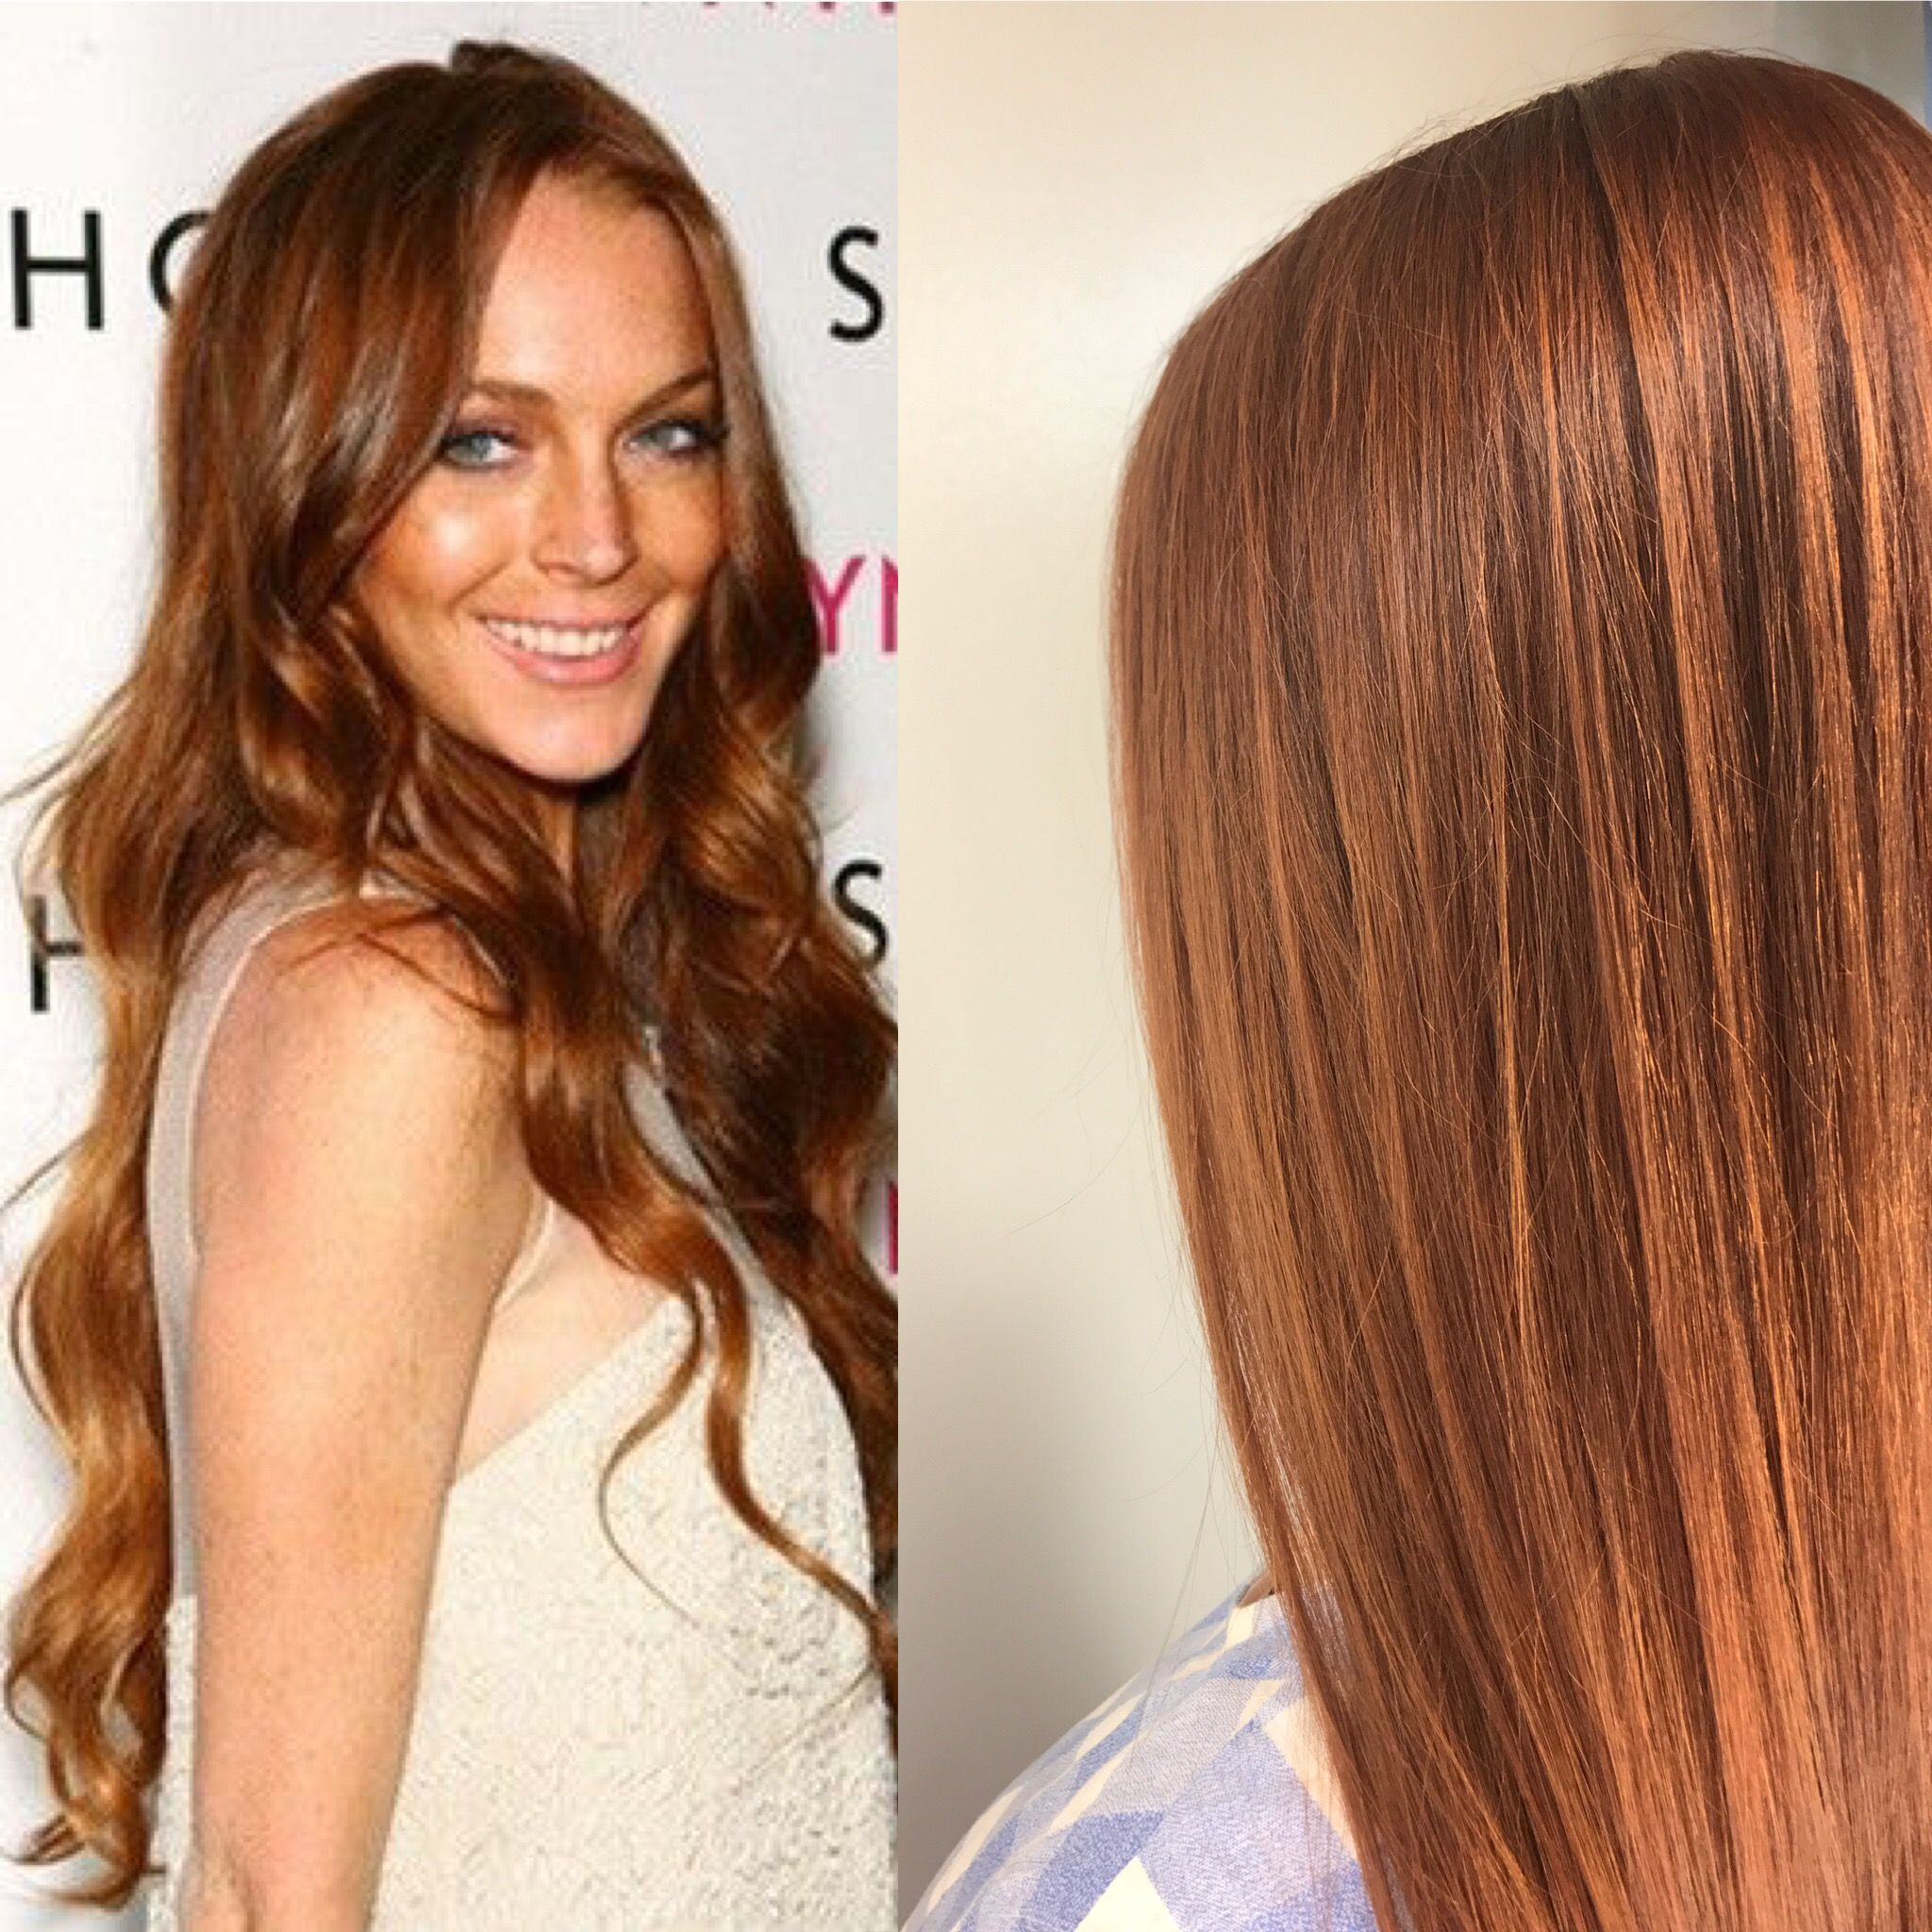 Lindsey Lohan Inspired Hair Color Red Hair Hairbypeytongibson